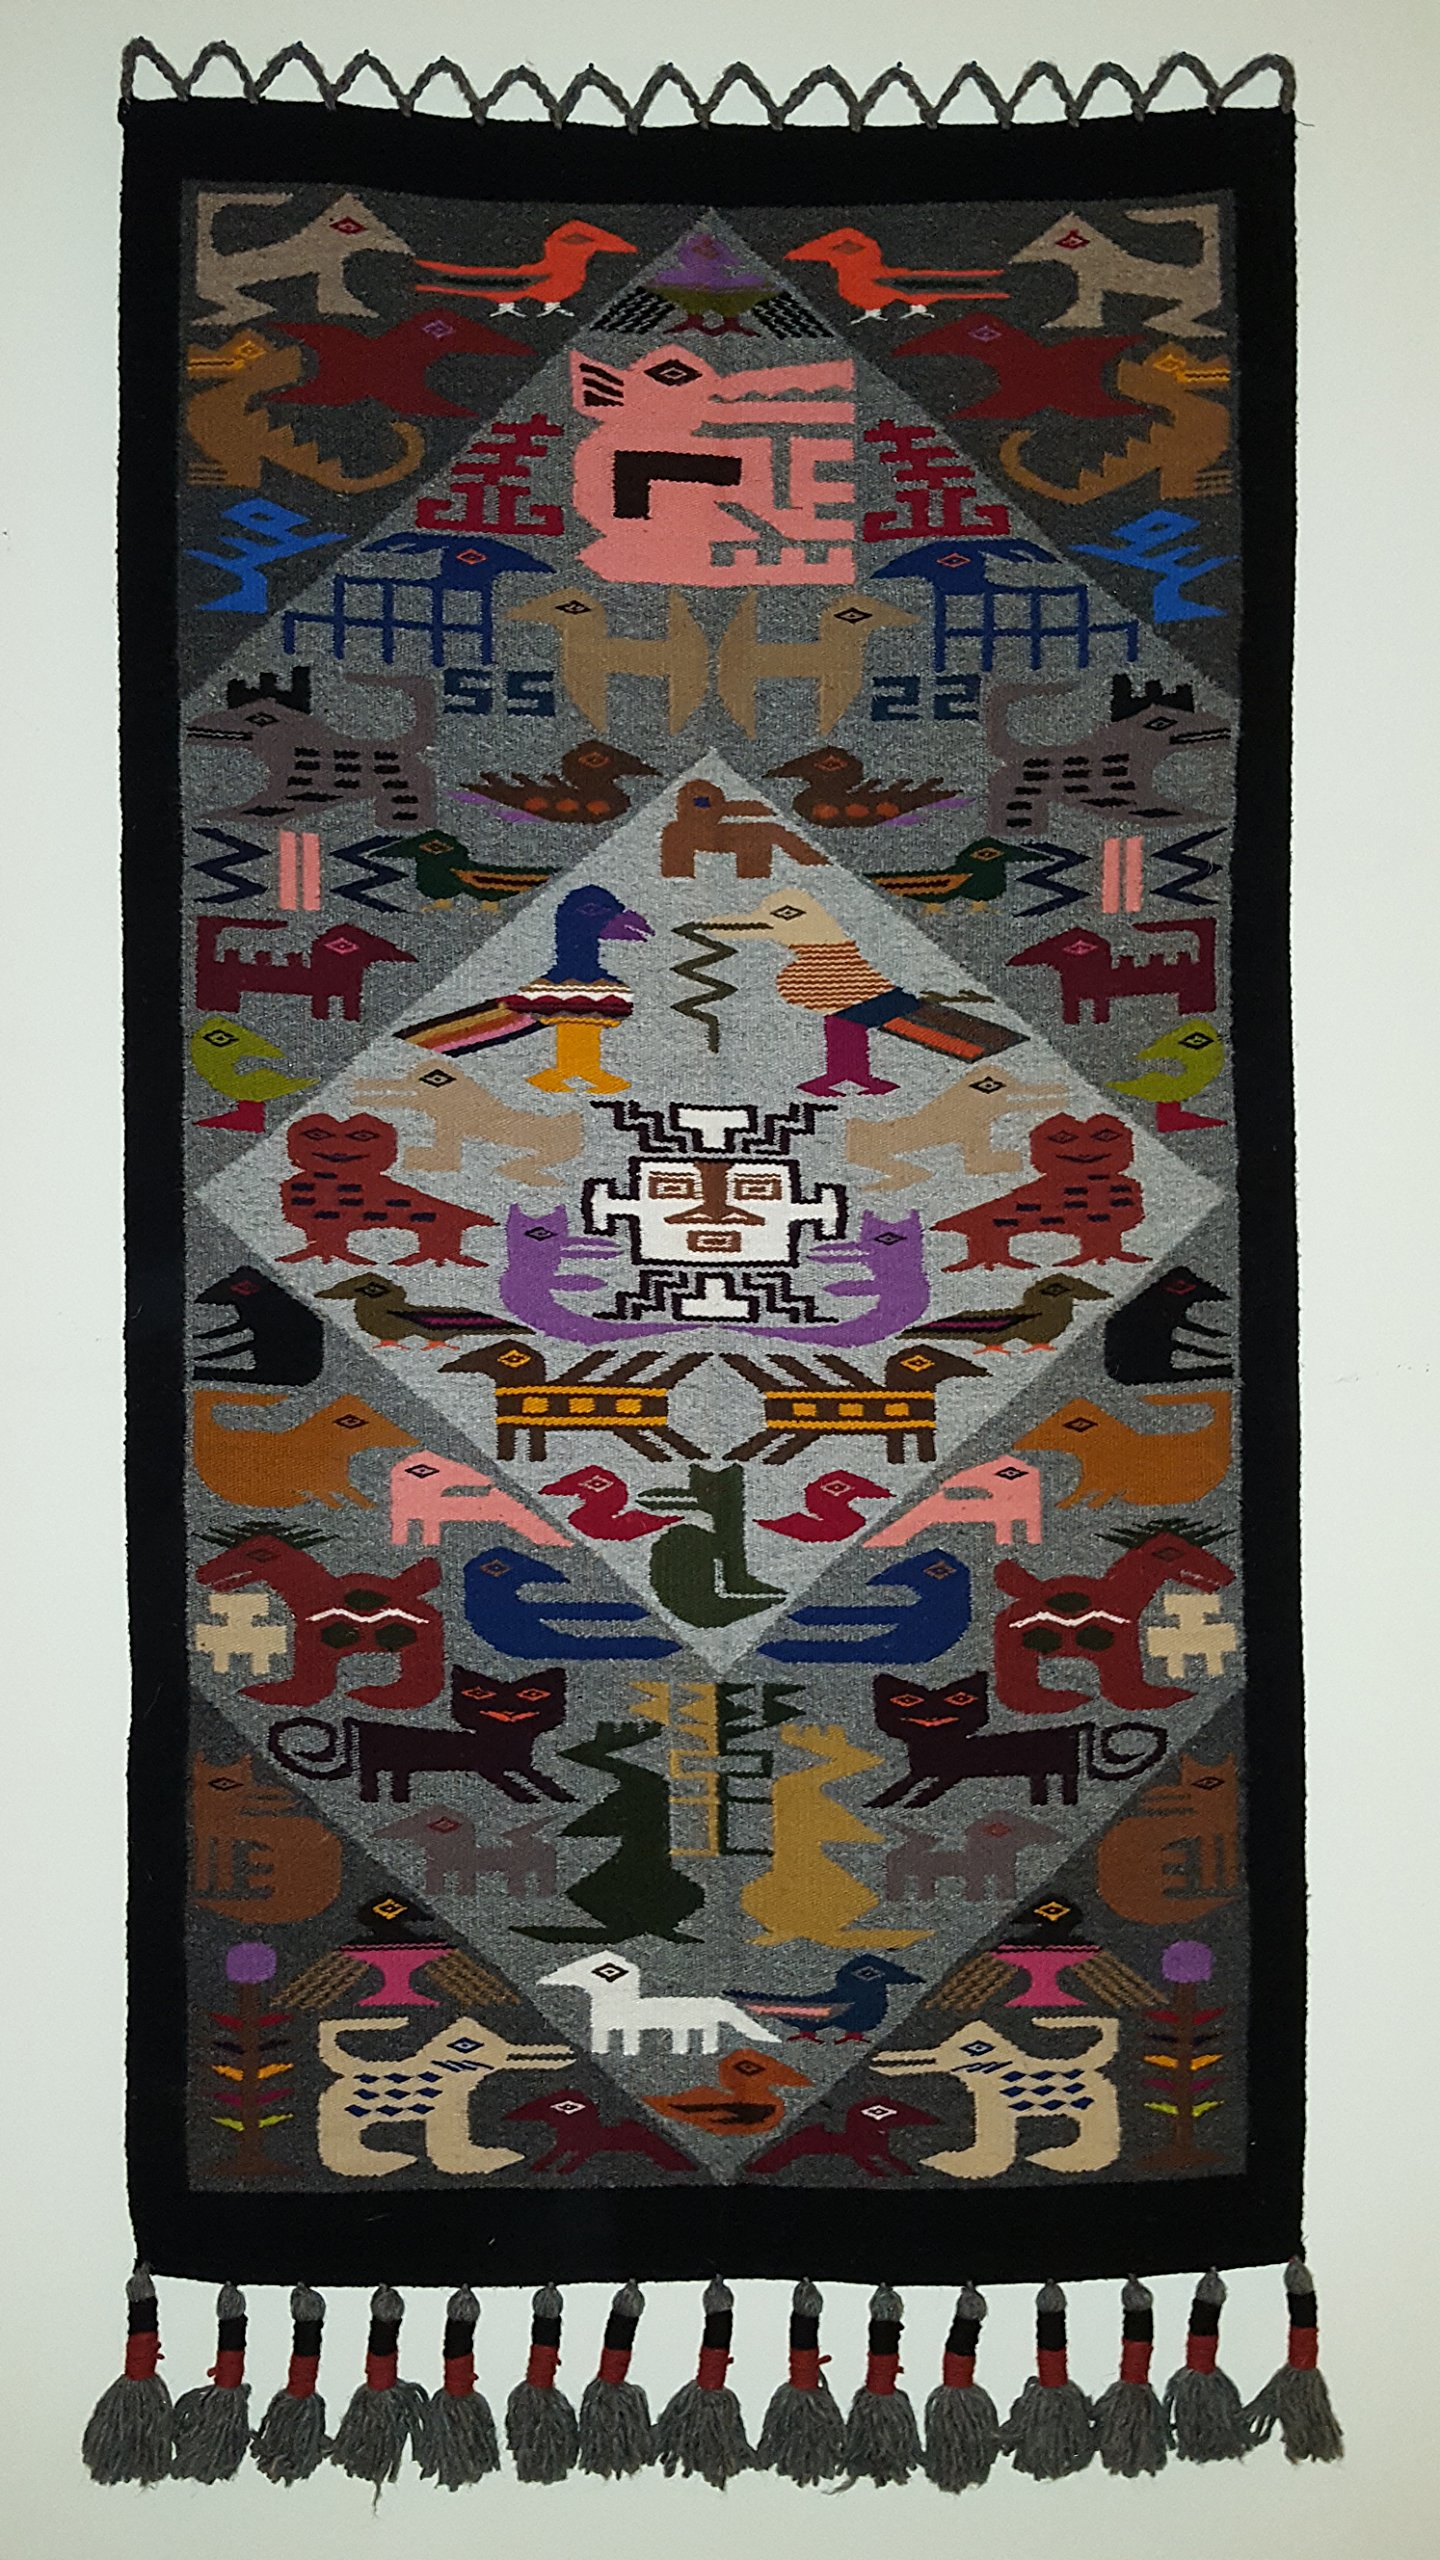 Tapestry from Ecuador - Pacha Mamma (Mother Earth); Traditional, Hand Woven, Hand Dyed, 100% Wool by Lonergan World Collection - Bringing Culture Home